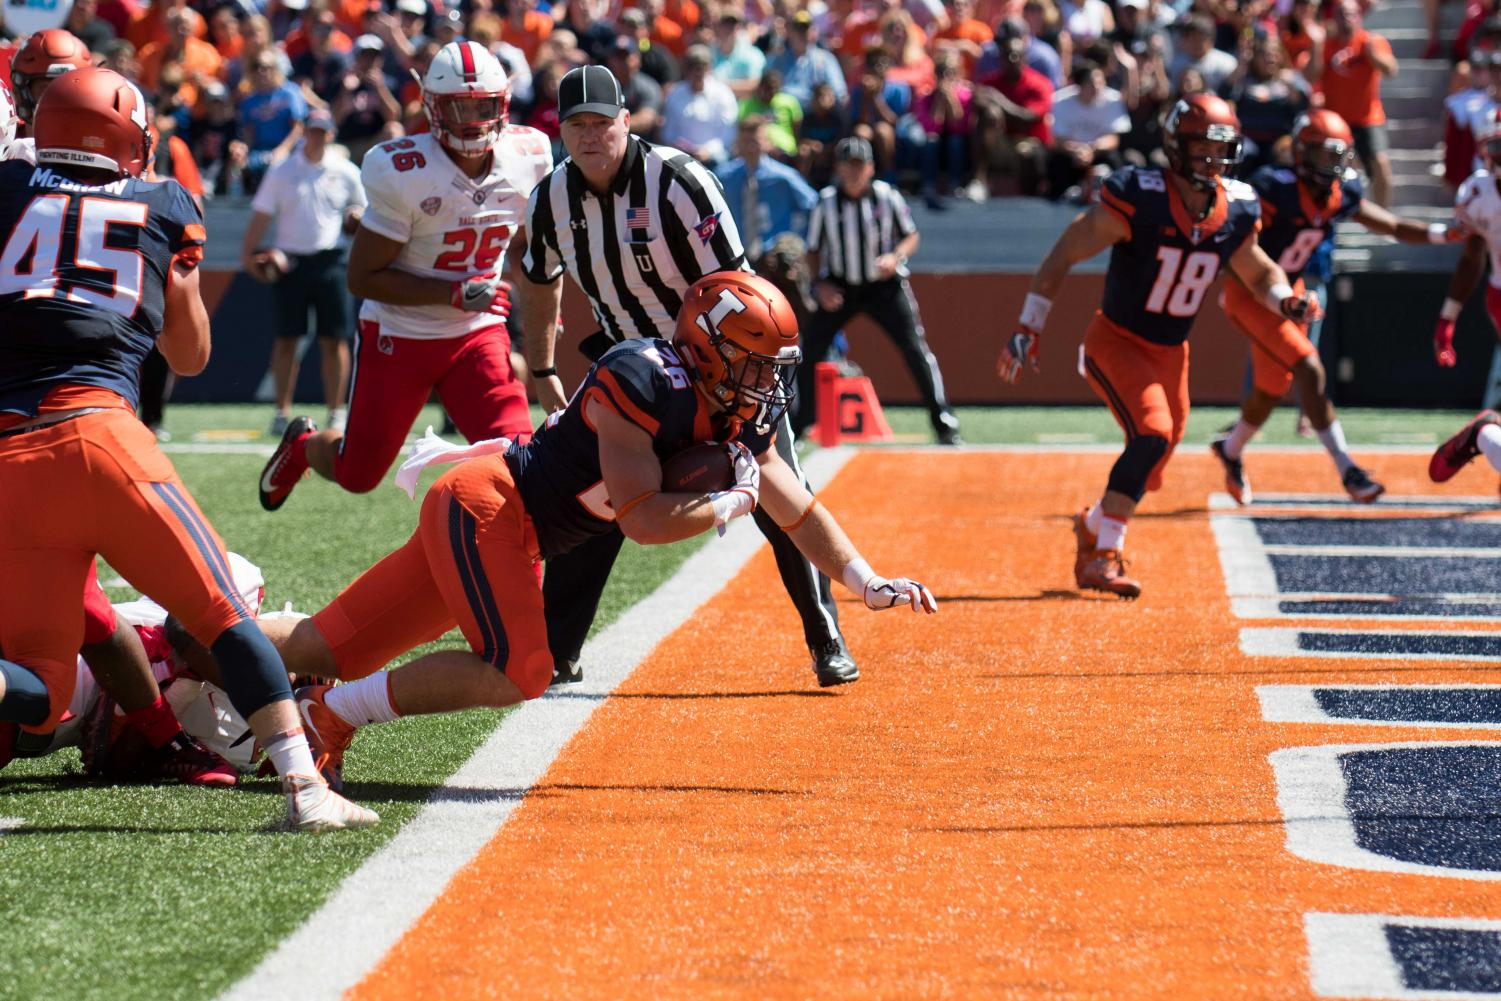 Illinois running back Mike Epstein dives for a touchdown during the game against Ball State on Saturday, September 2, at Memorial Stadium.